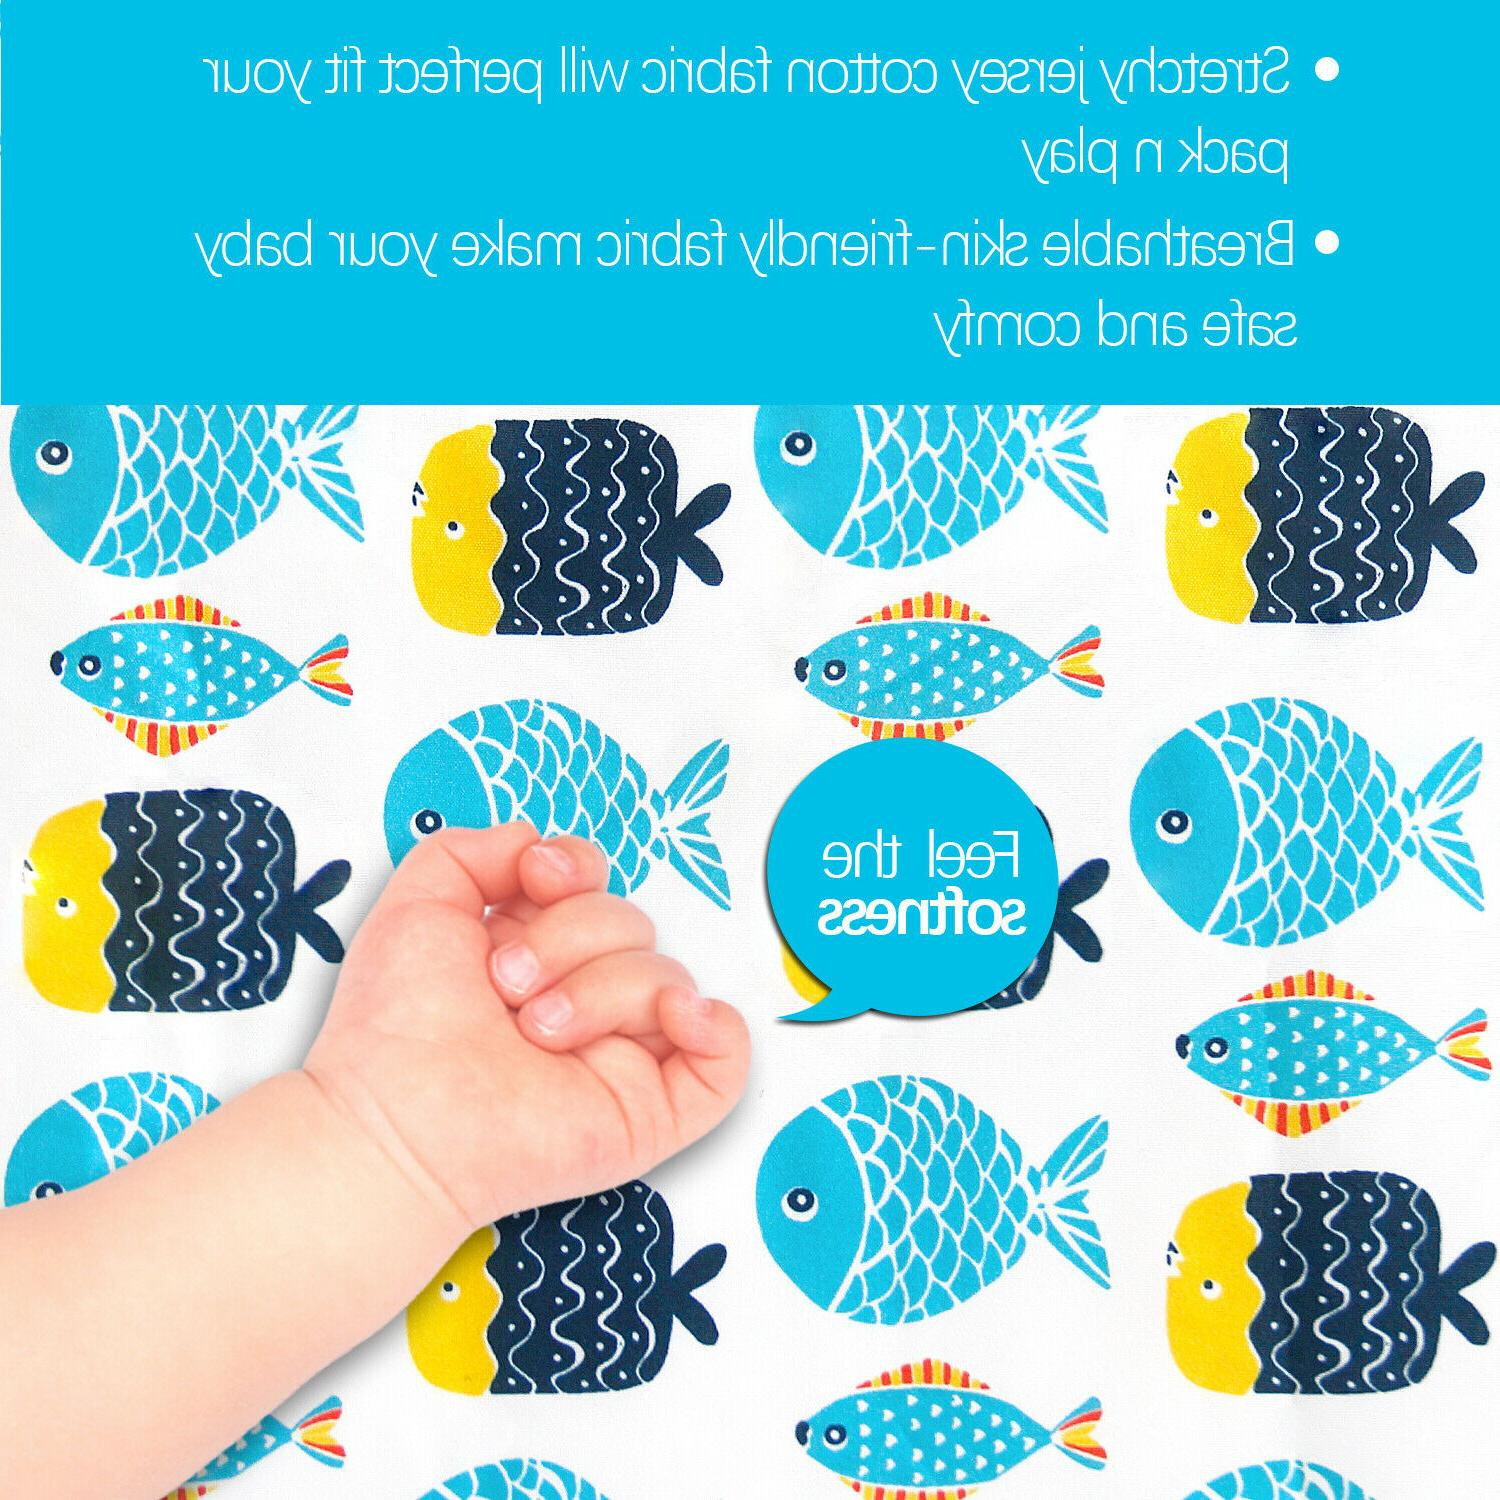 Standard Mattress Sheets for Baby Ultra Covers